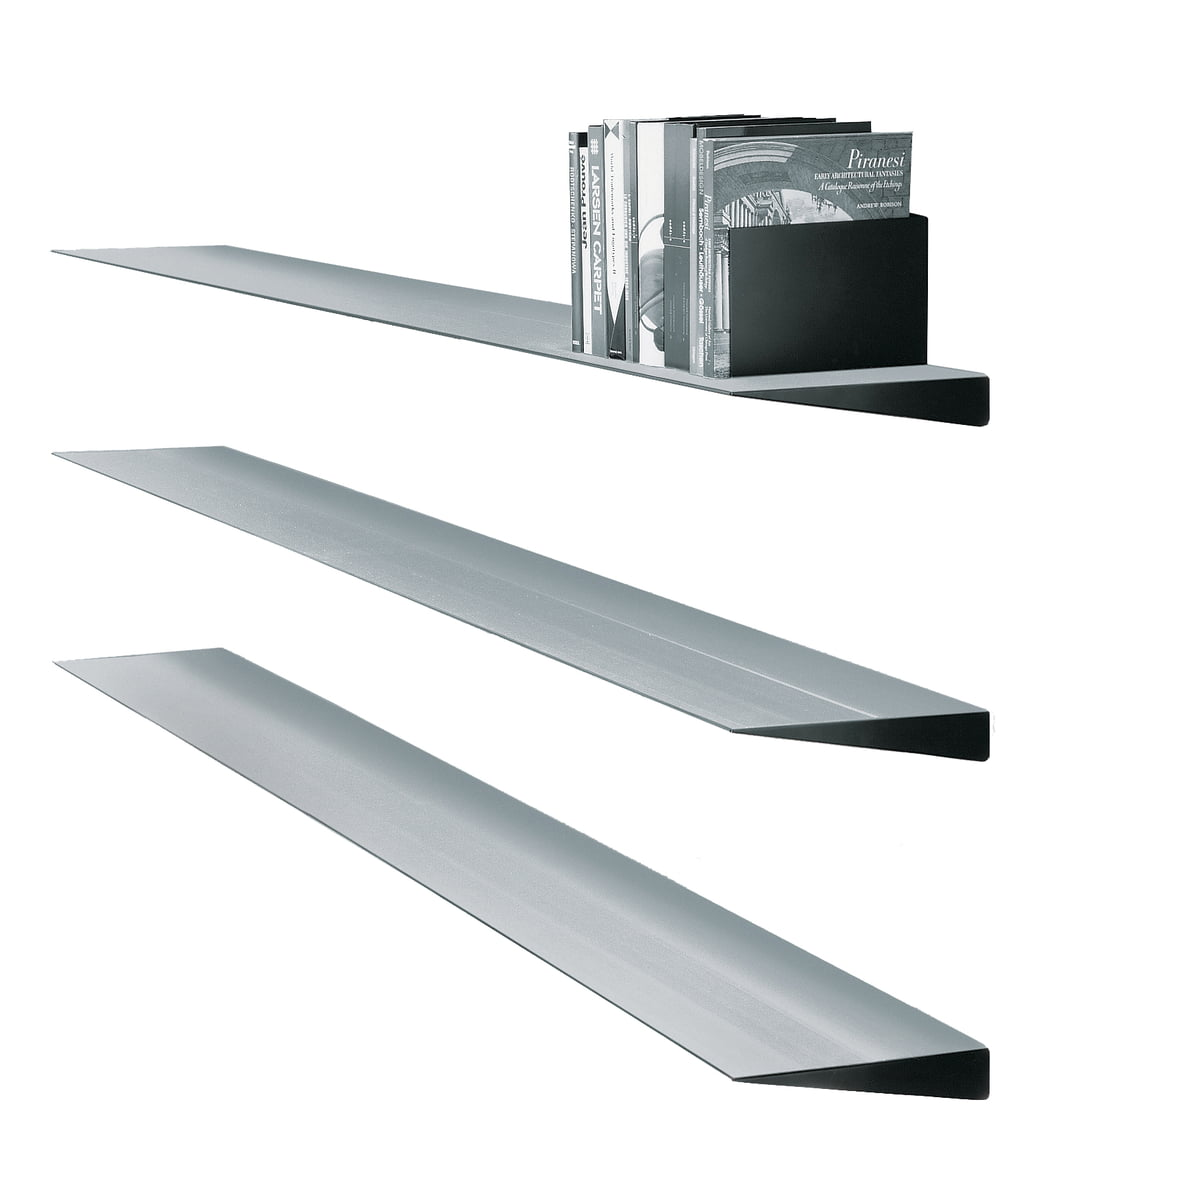 Wogg 10 aluminum wall shelf